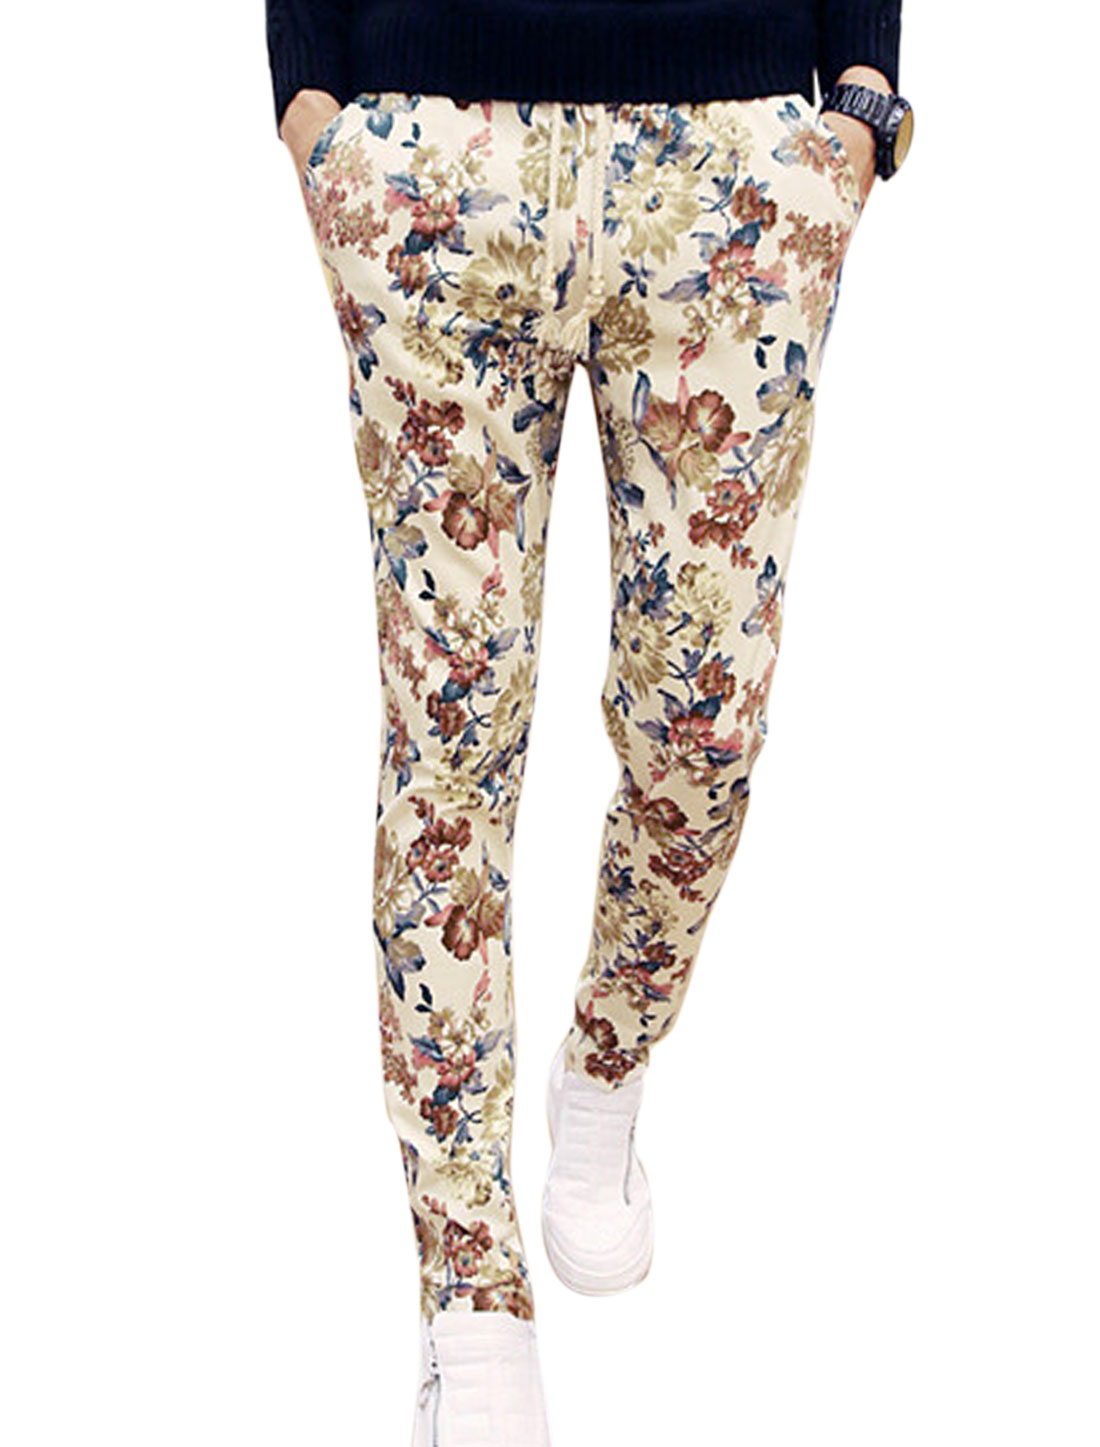 Men Drawstring Waist Floral Prints Tapered Slim Fit Casual Pants Beige W28